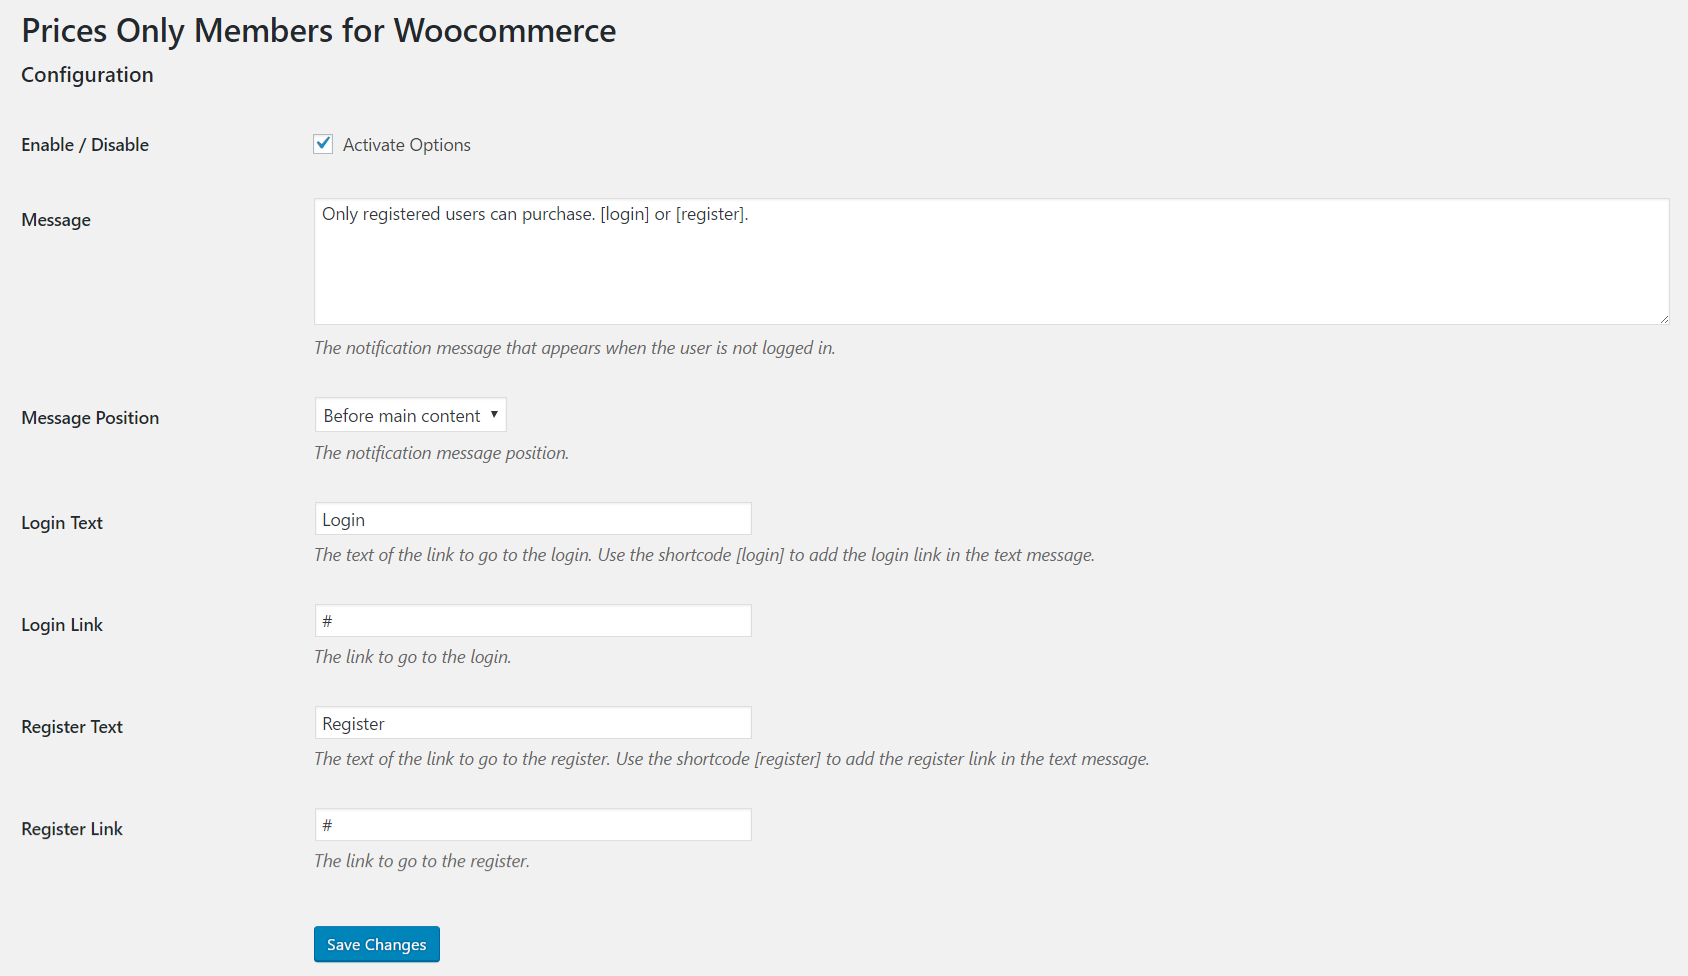 prices-only-members-for-woocommerce screenshot 1